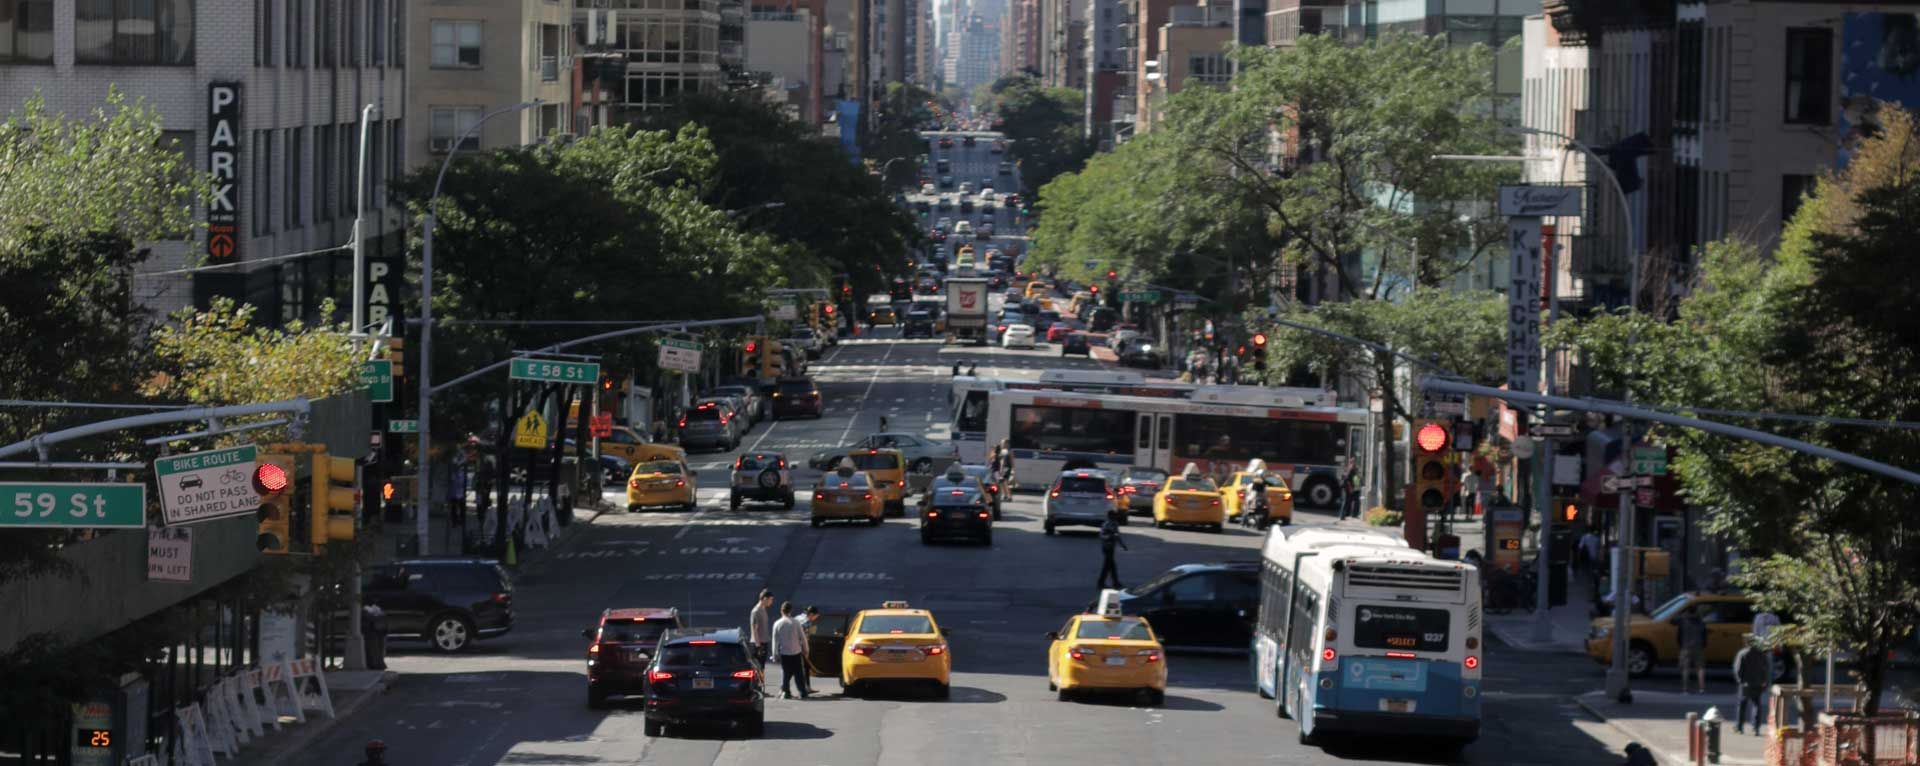 1st Avenue New York